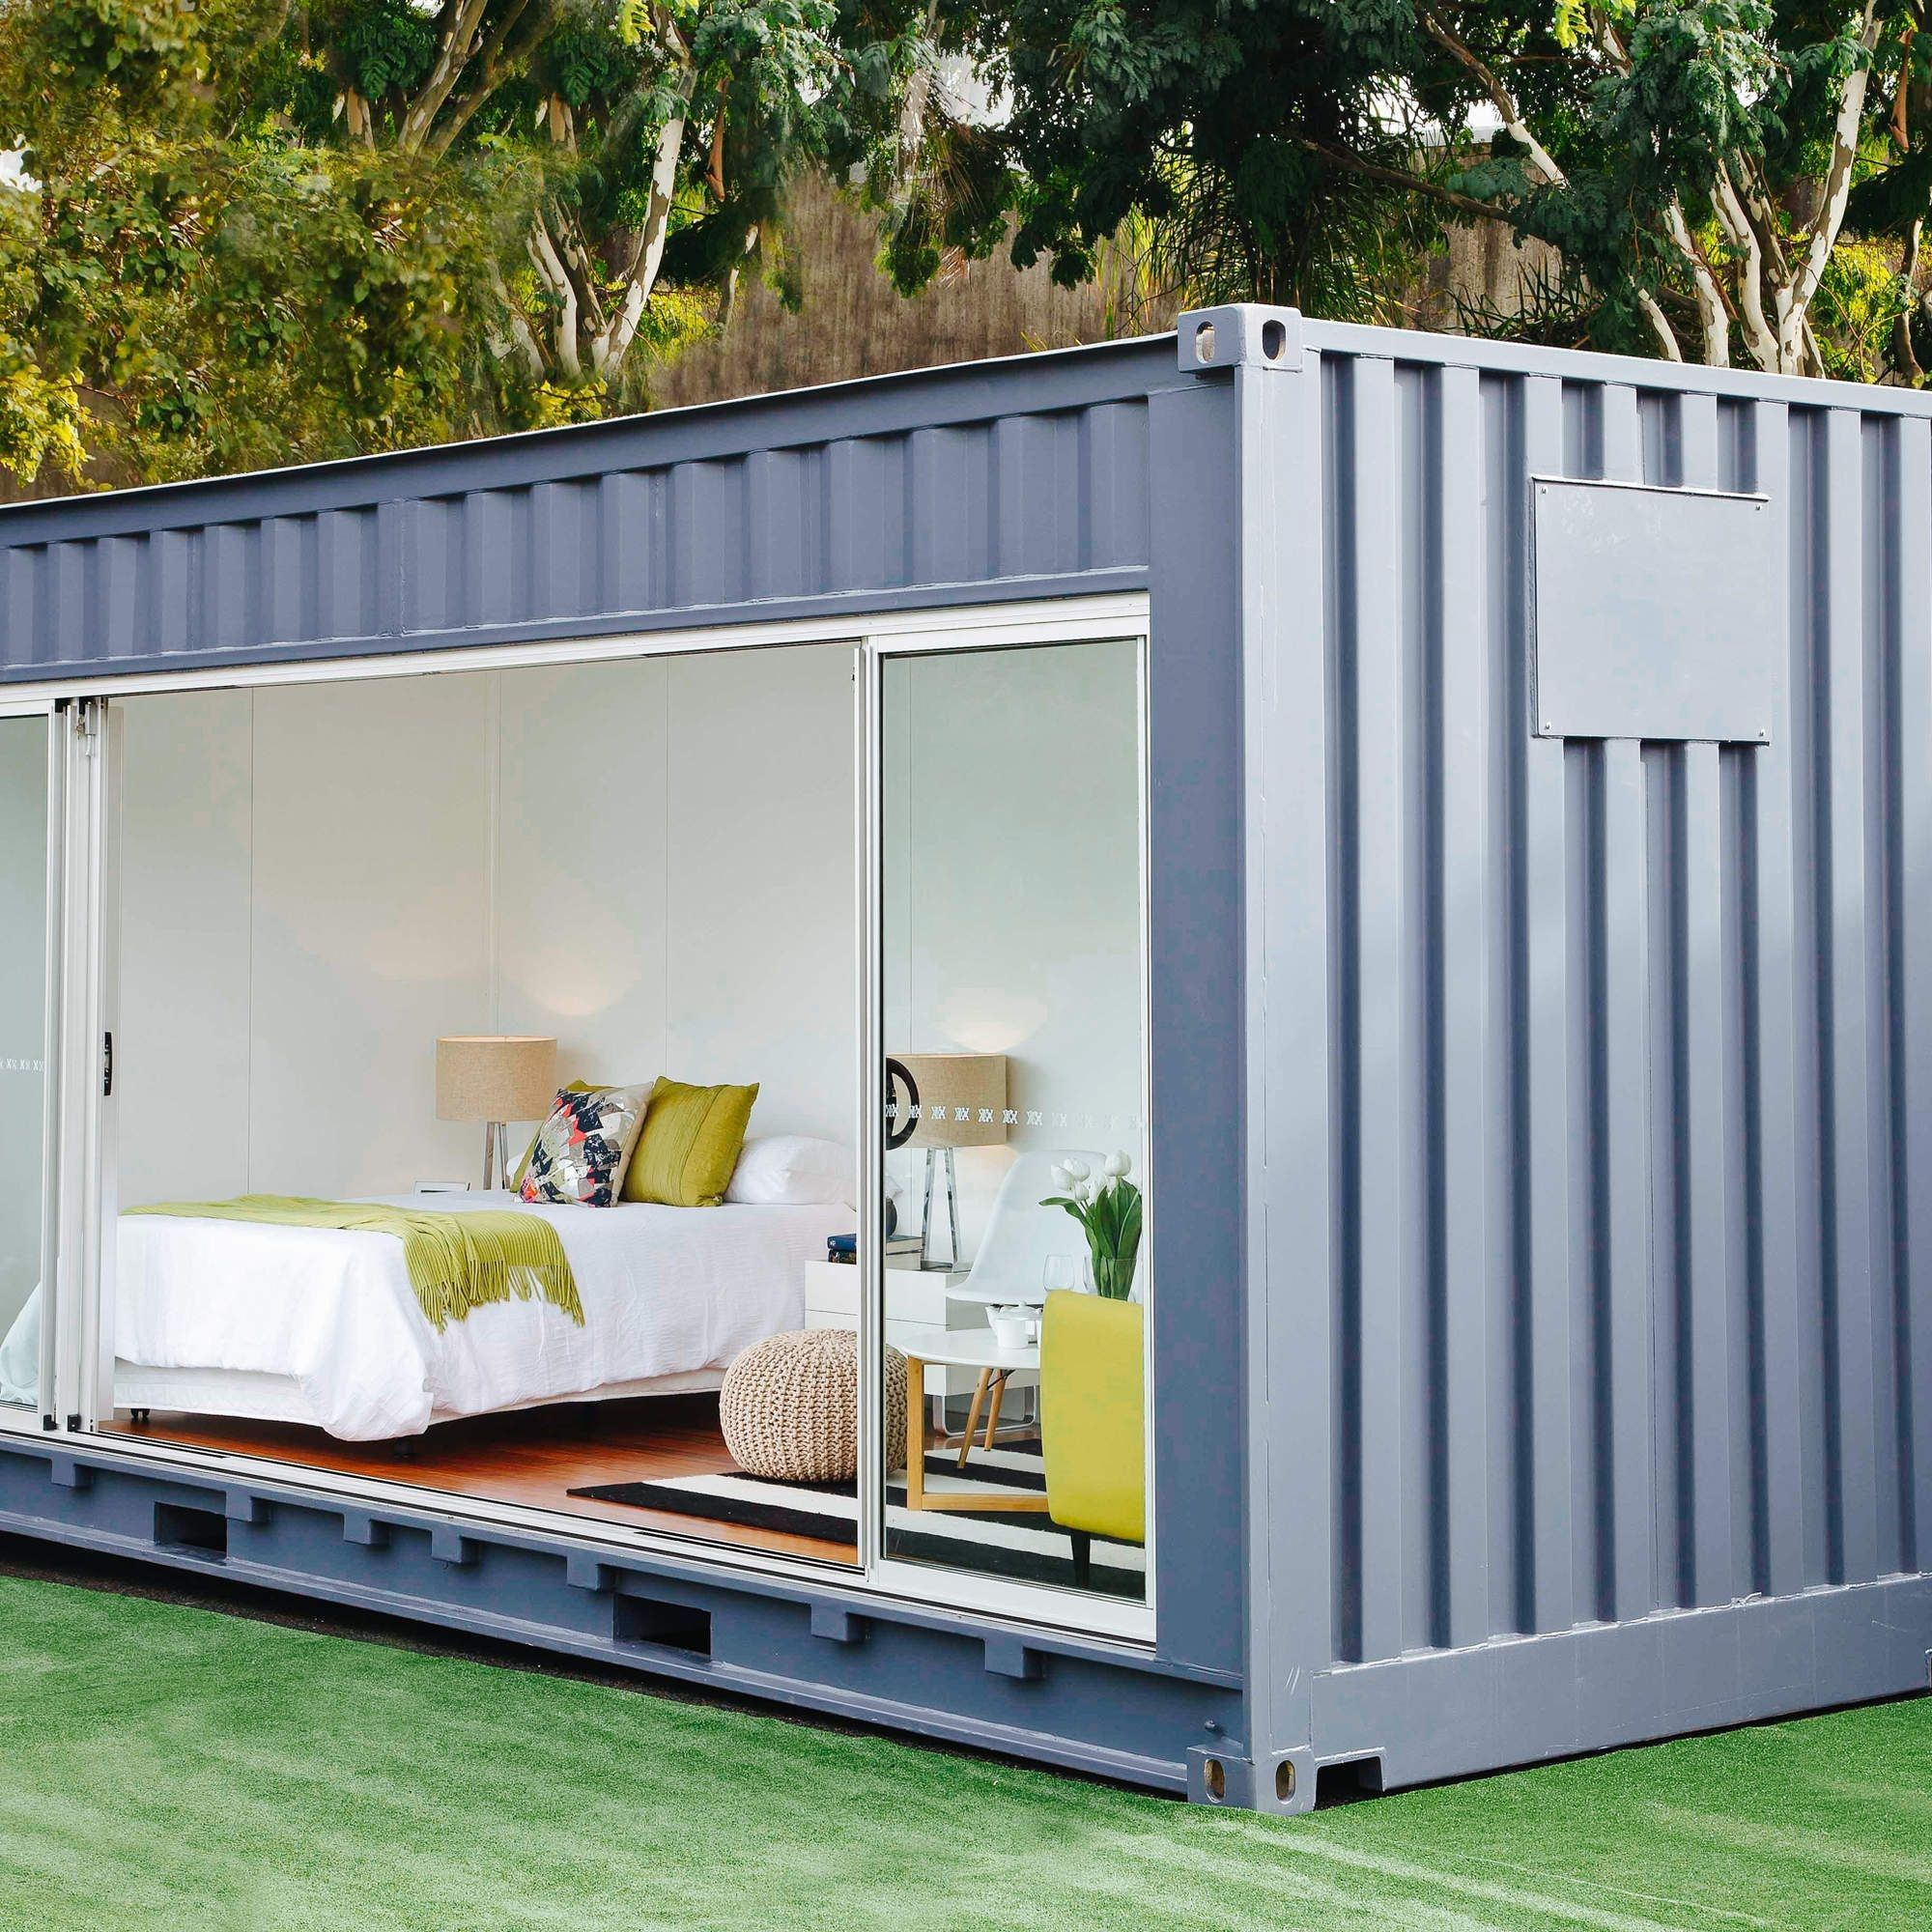 Epingle Sur Chalet De Jardin Habitable